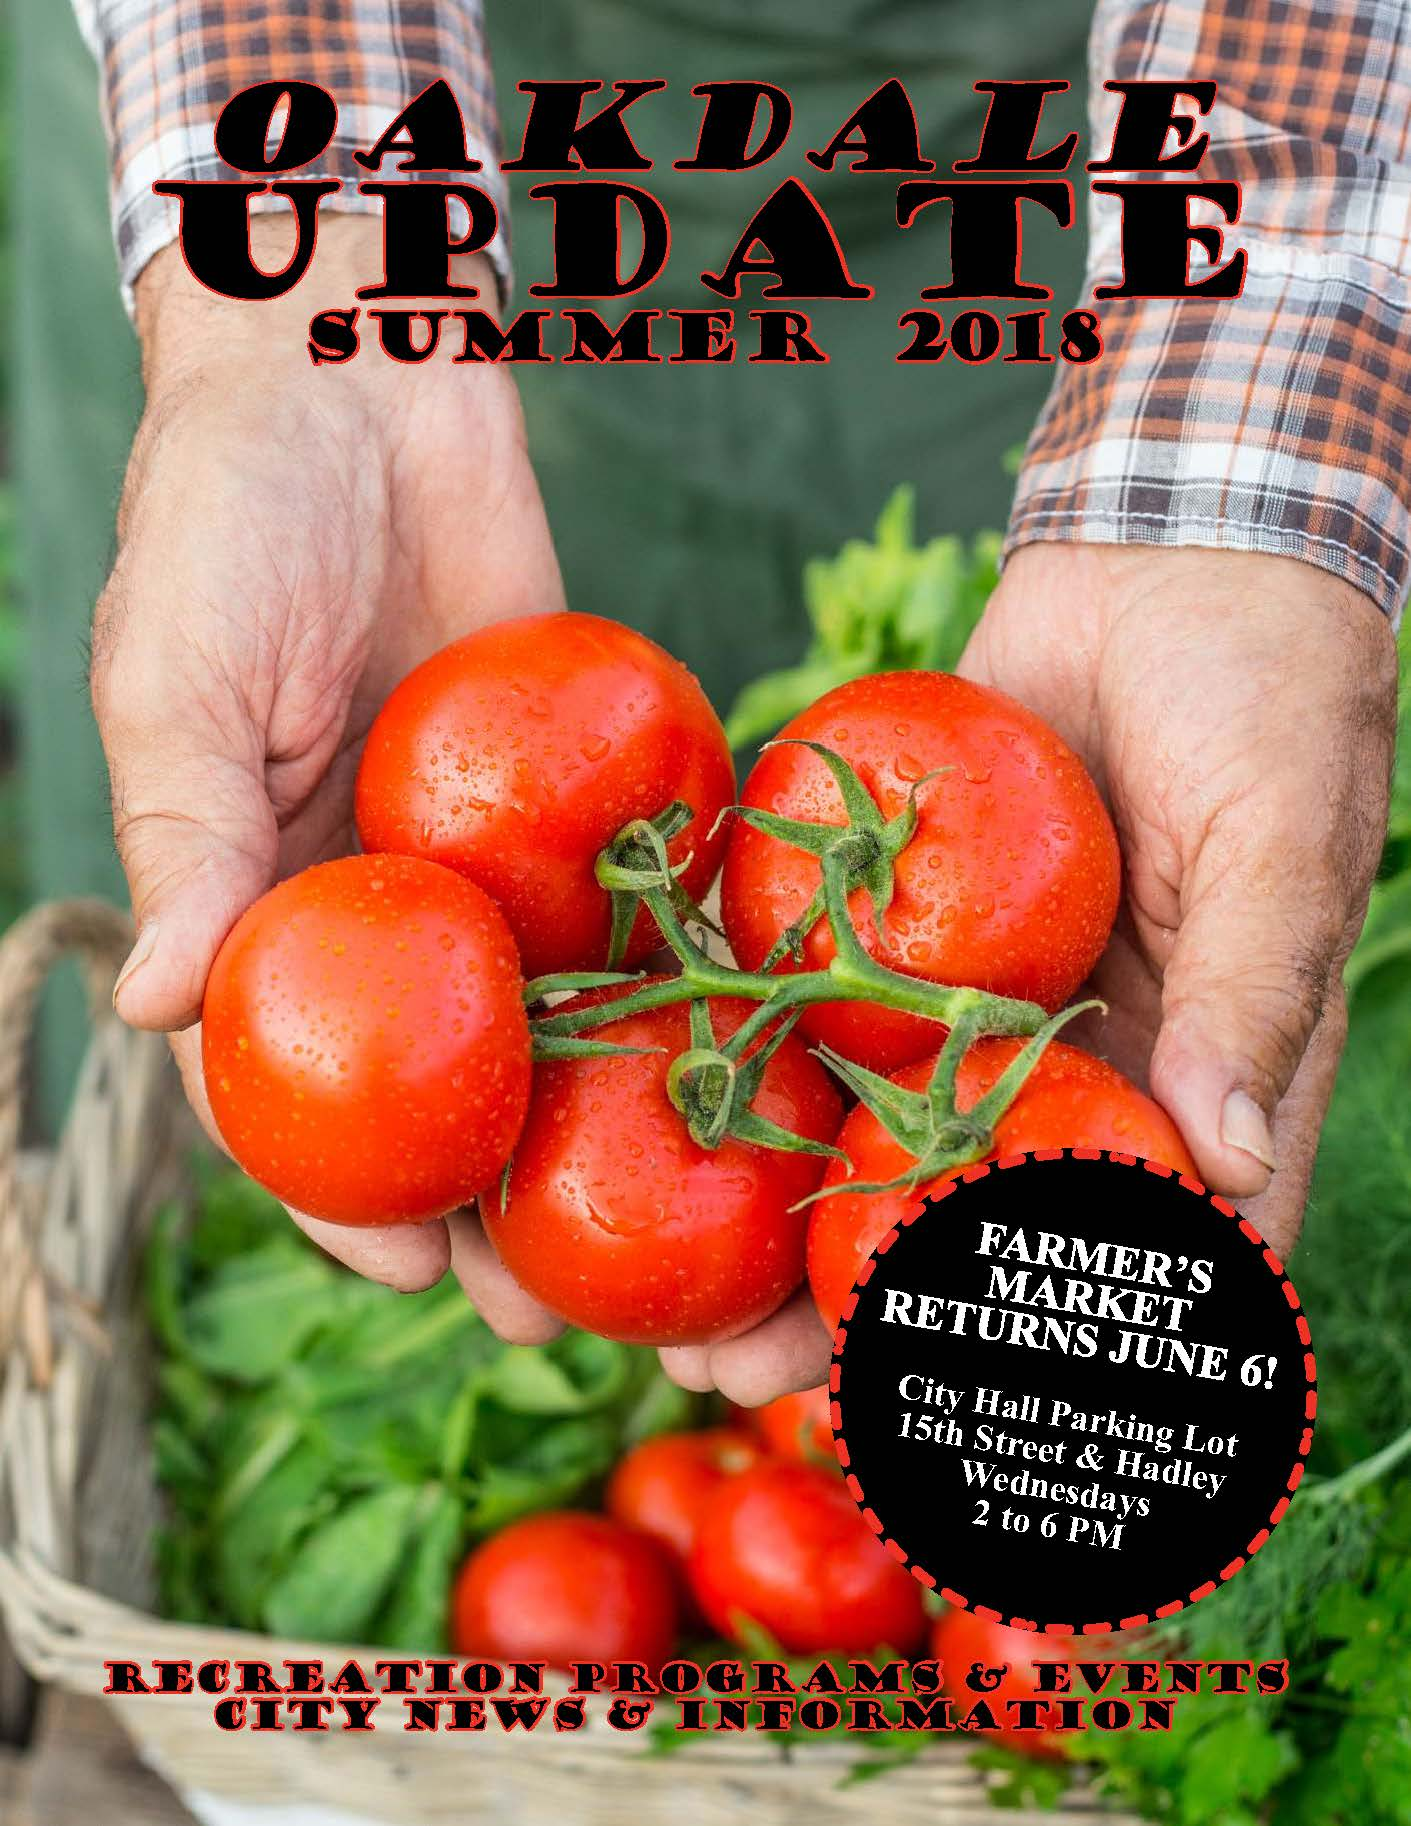 Cover of Oakdale Update Newsletter for Summer 2018 showing two hands holding red tomatoes